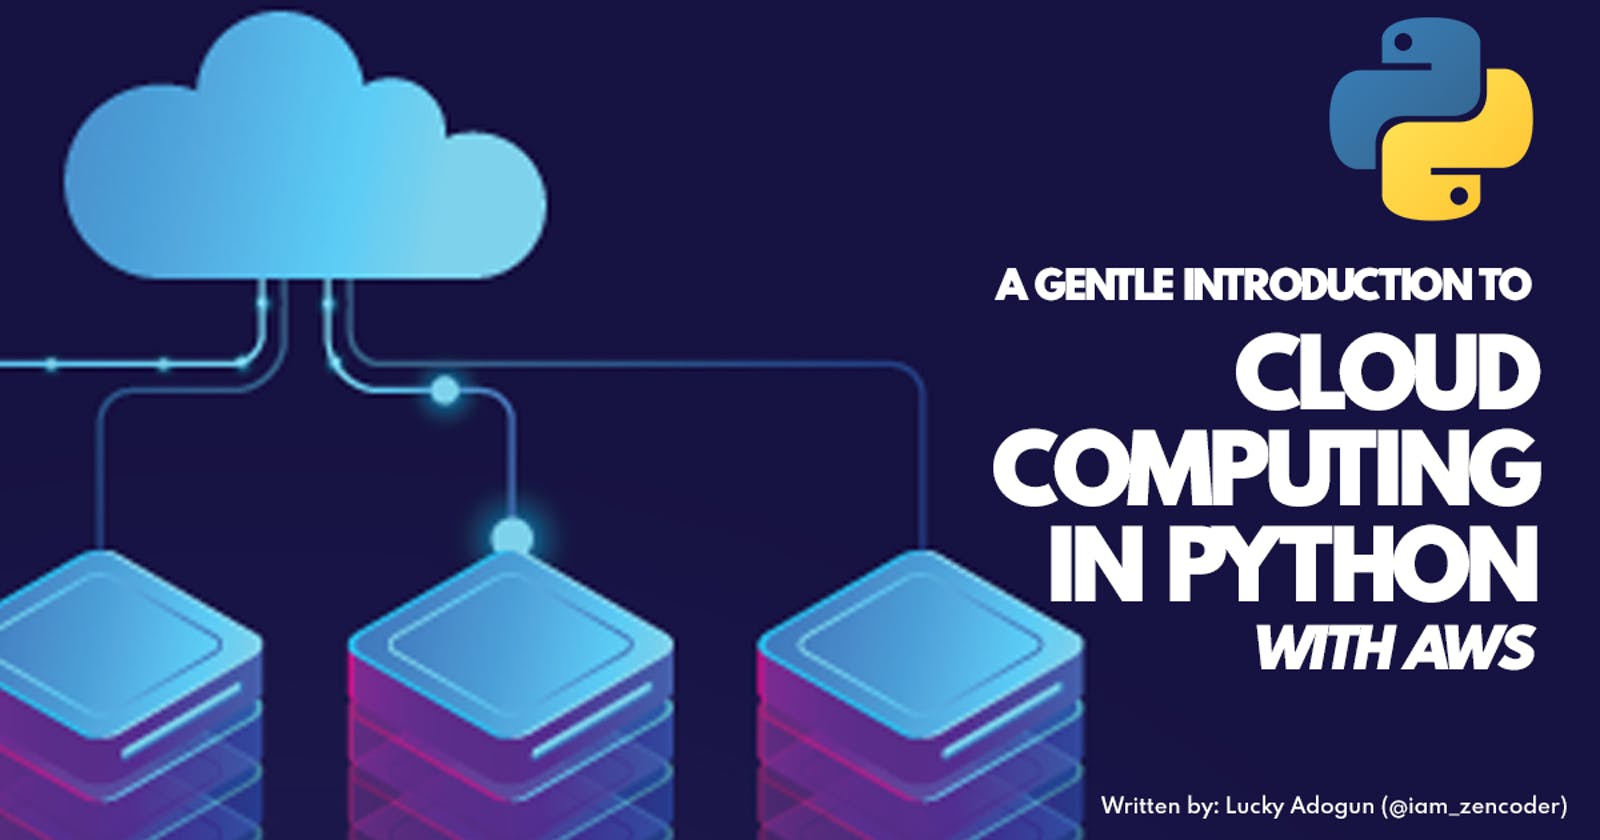 A Gentle Introduction to Cloud Computing in Python with AWS